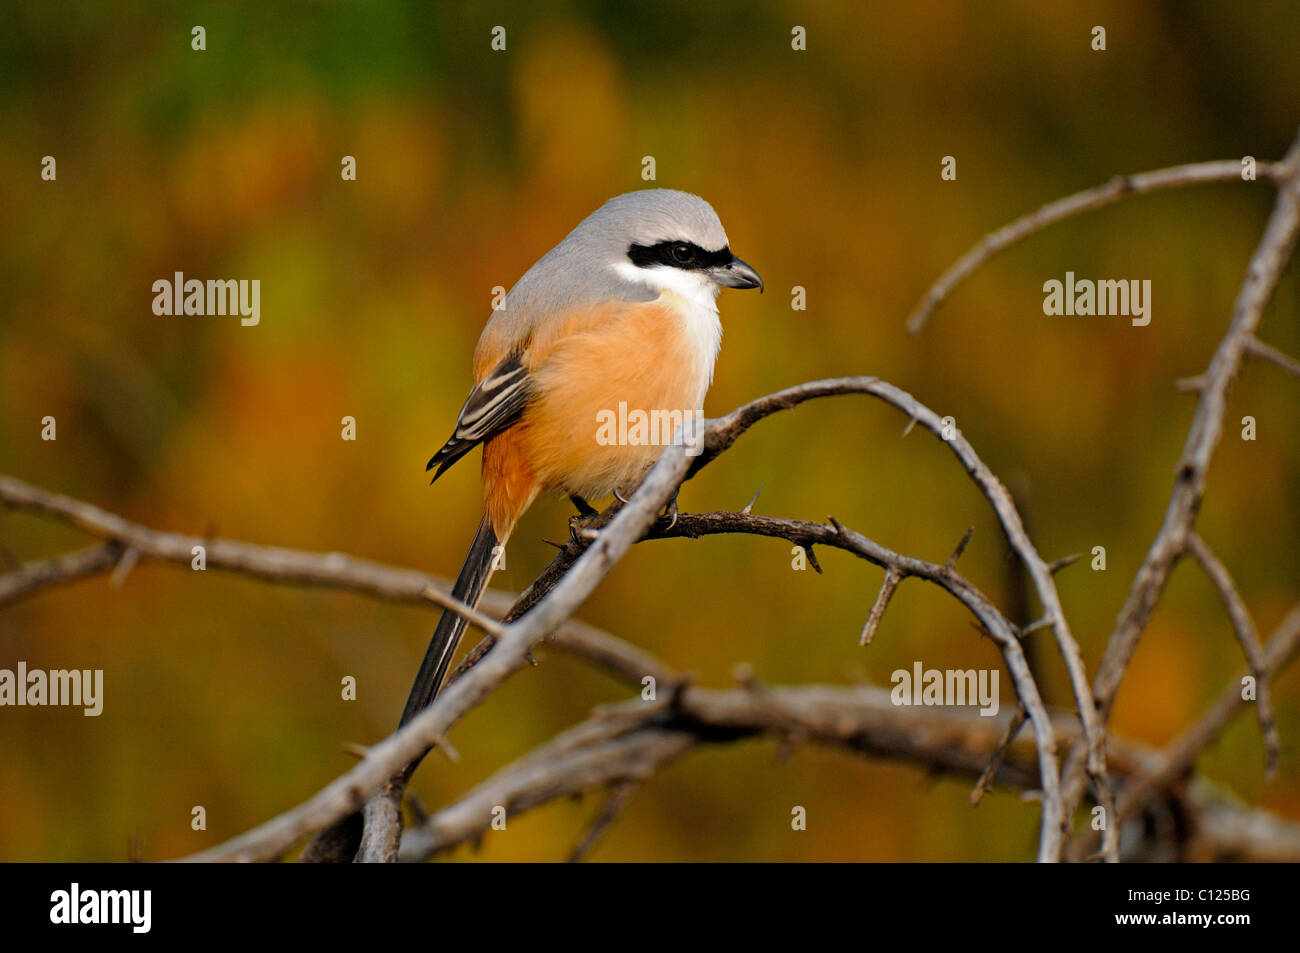 Long-tailed Shrike or Rufous-backed Shrike (Lanius schach) in the jungles of Ranthambore National Park, Rajasthan, - Stock Image